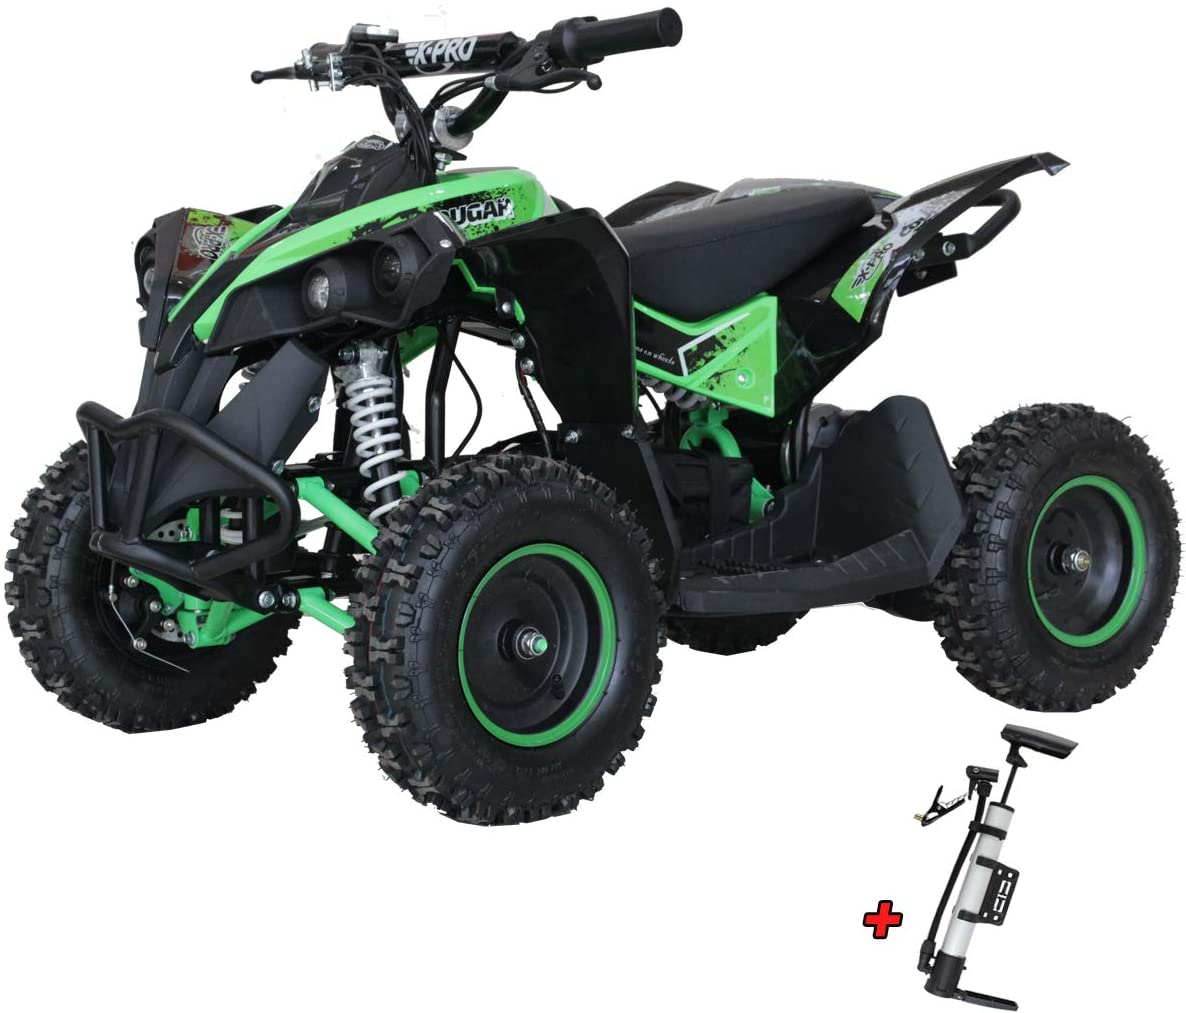 X-PRO Cougar 1000 Electric Kids ATV Quad 4 Wheeler, Dirt Quad Electric Kids Four-Wheeled Off-Road Vehicle 1000W 36V Battery Powered (Green)